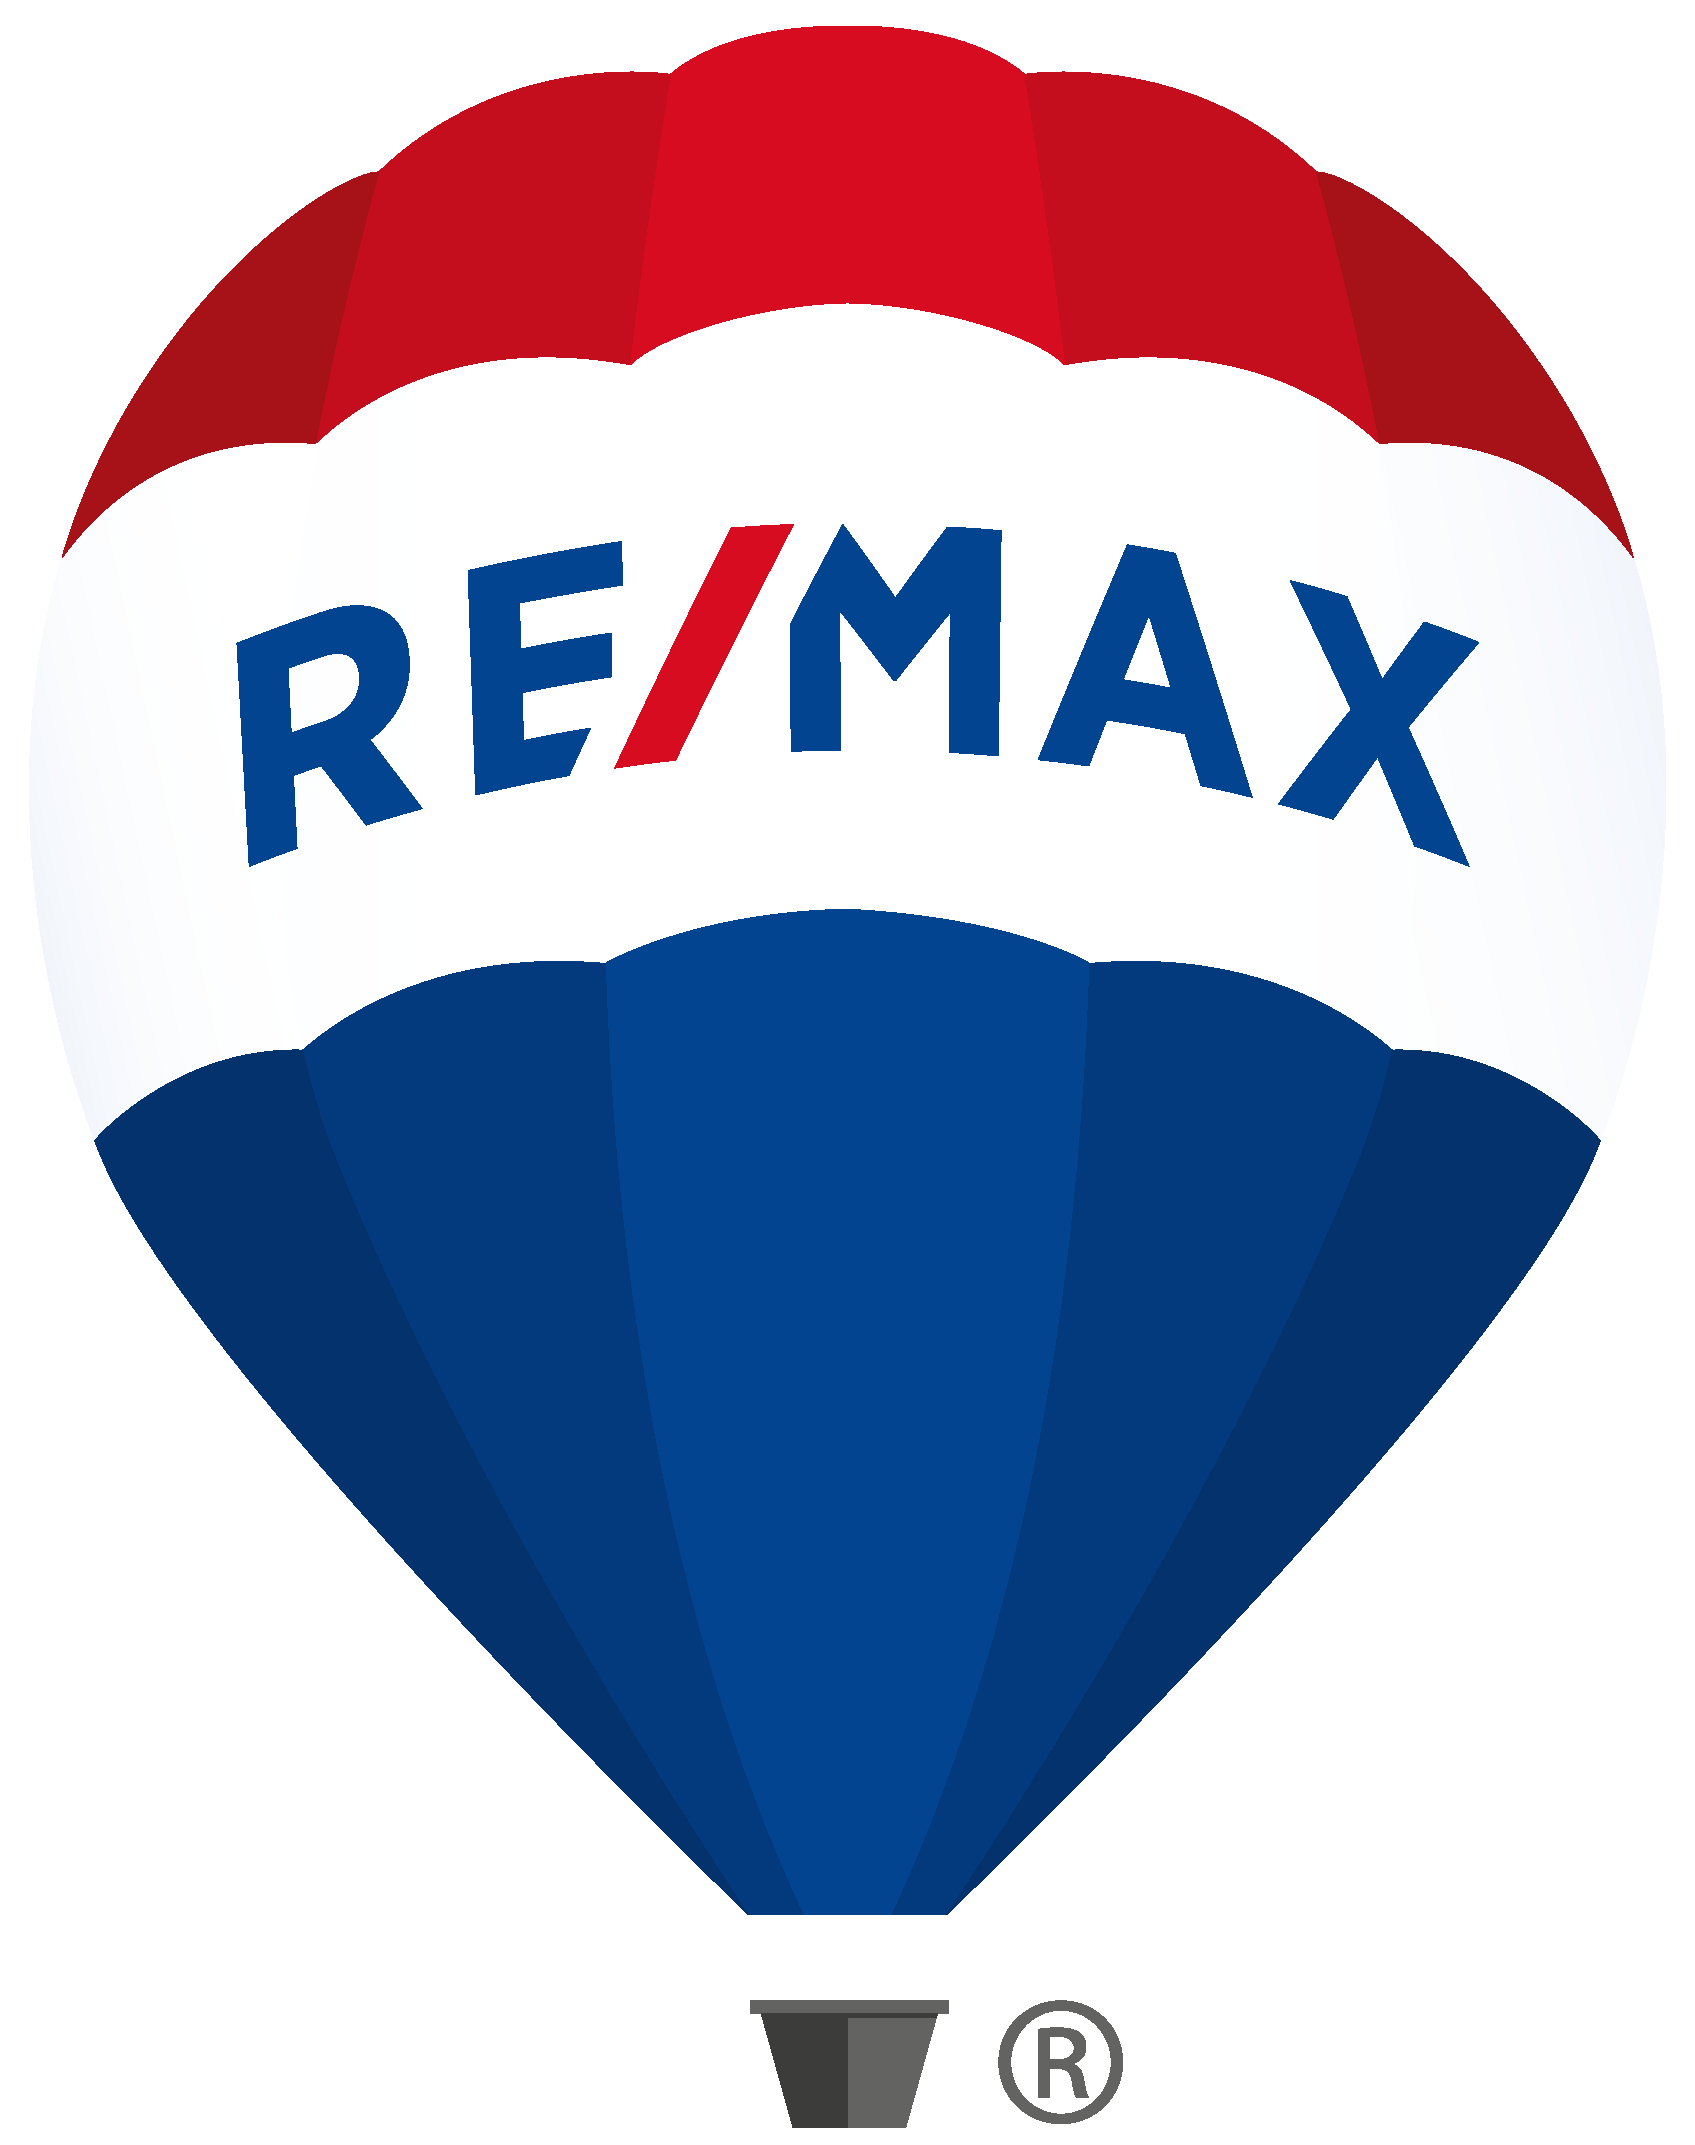 remax_balloon.png